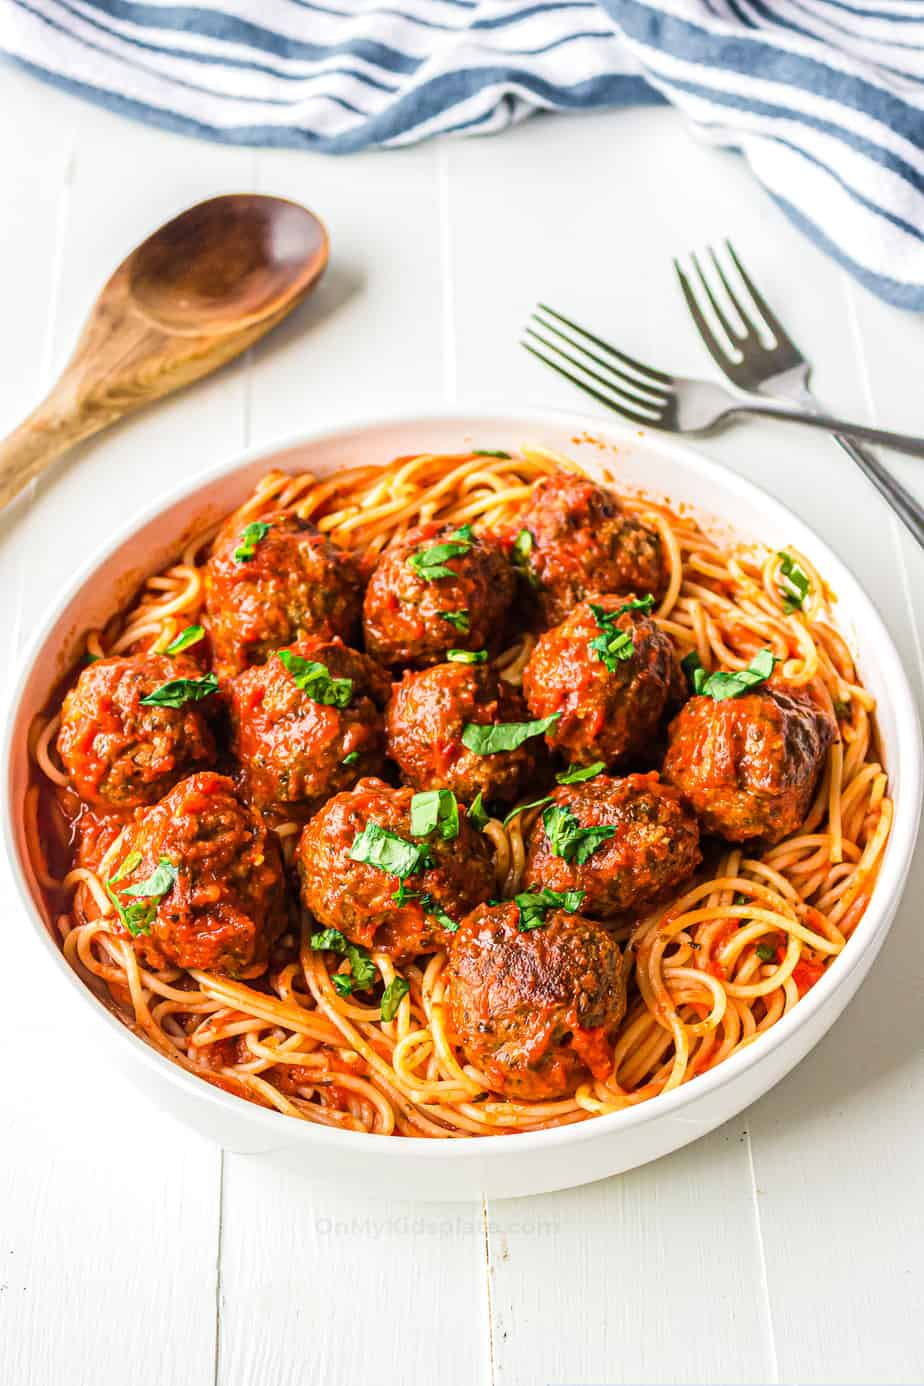 Meatballs in a large bowl over top of spaghetti with marinara sauce.